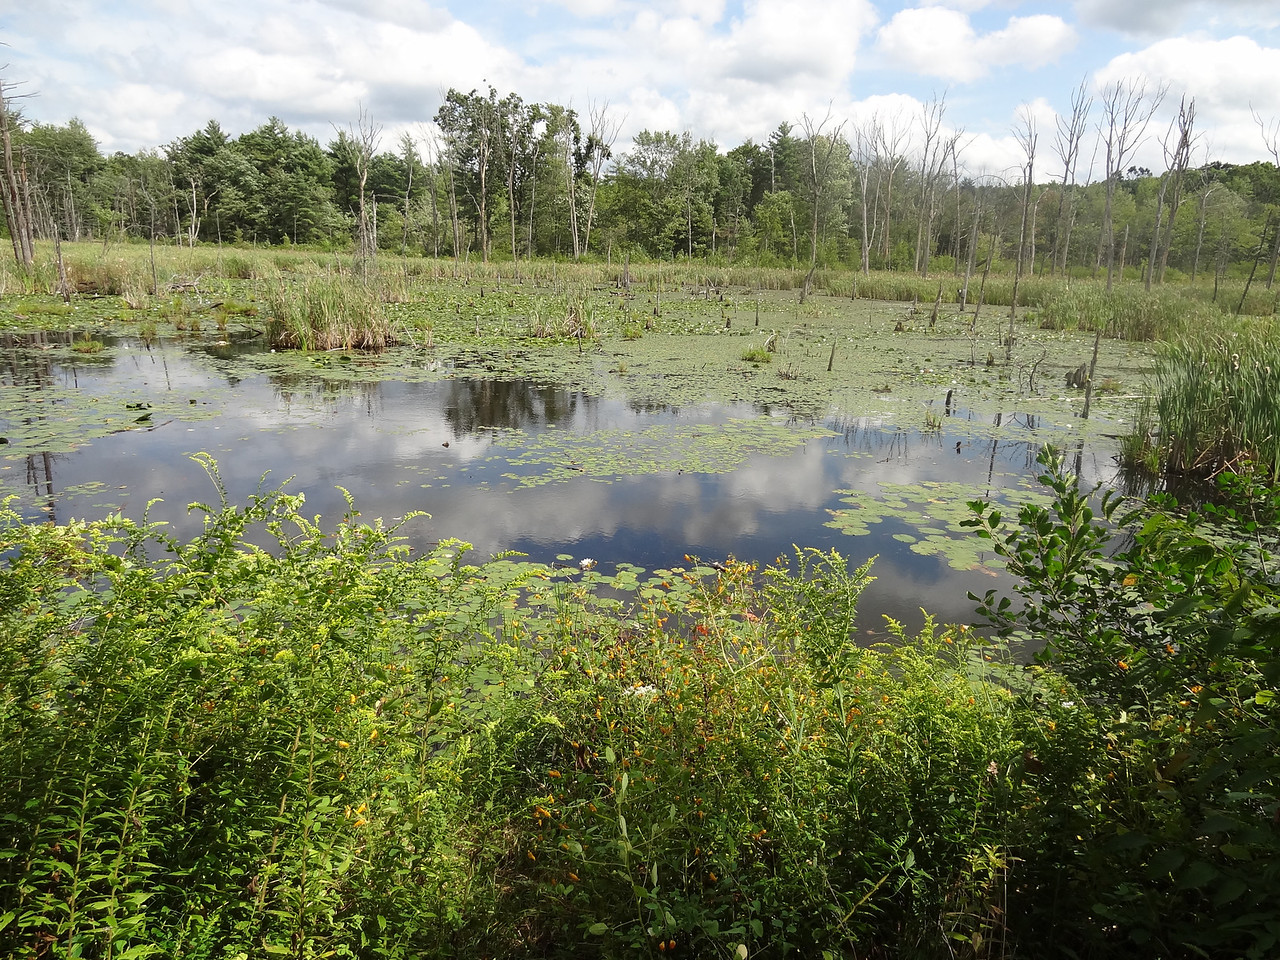 We passed a number of swamps like this one, with a plethora of flora and fauna.